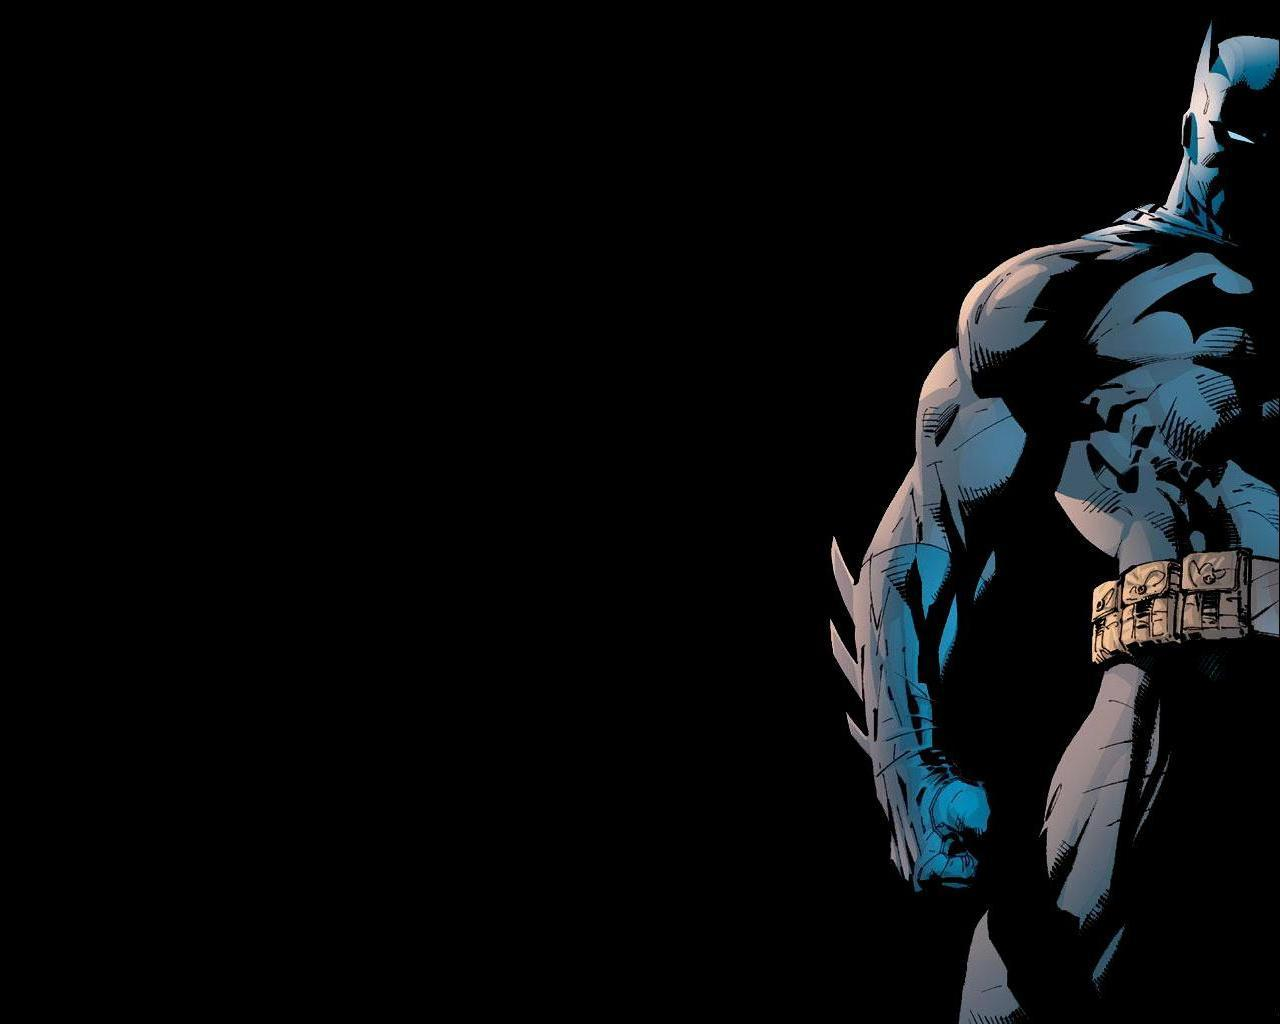 Batman   Batman Wallpaper 1457726 1280x1024